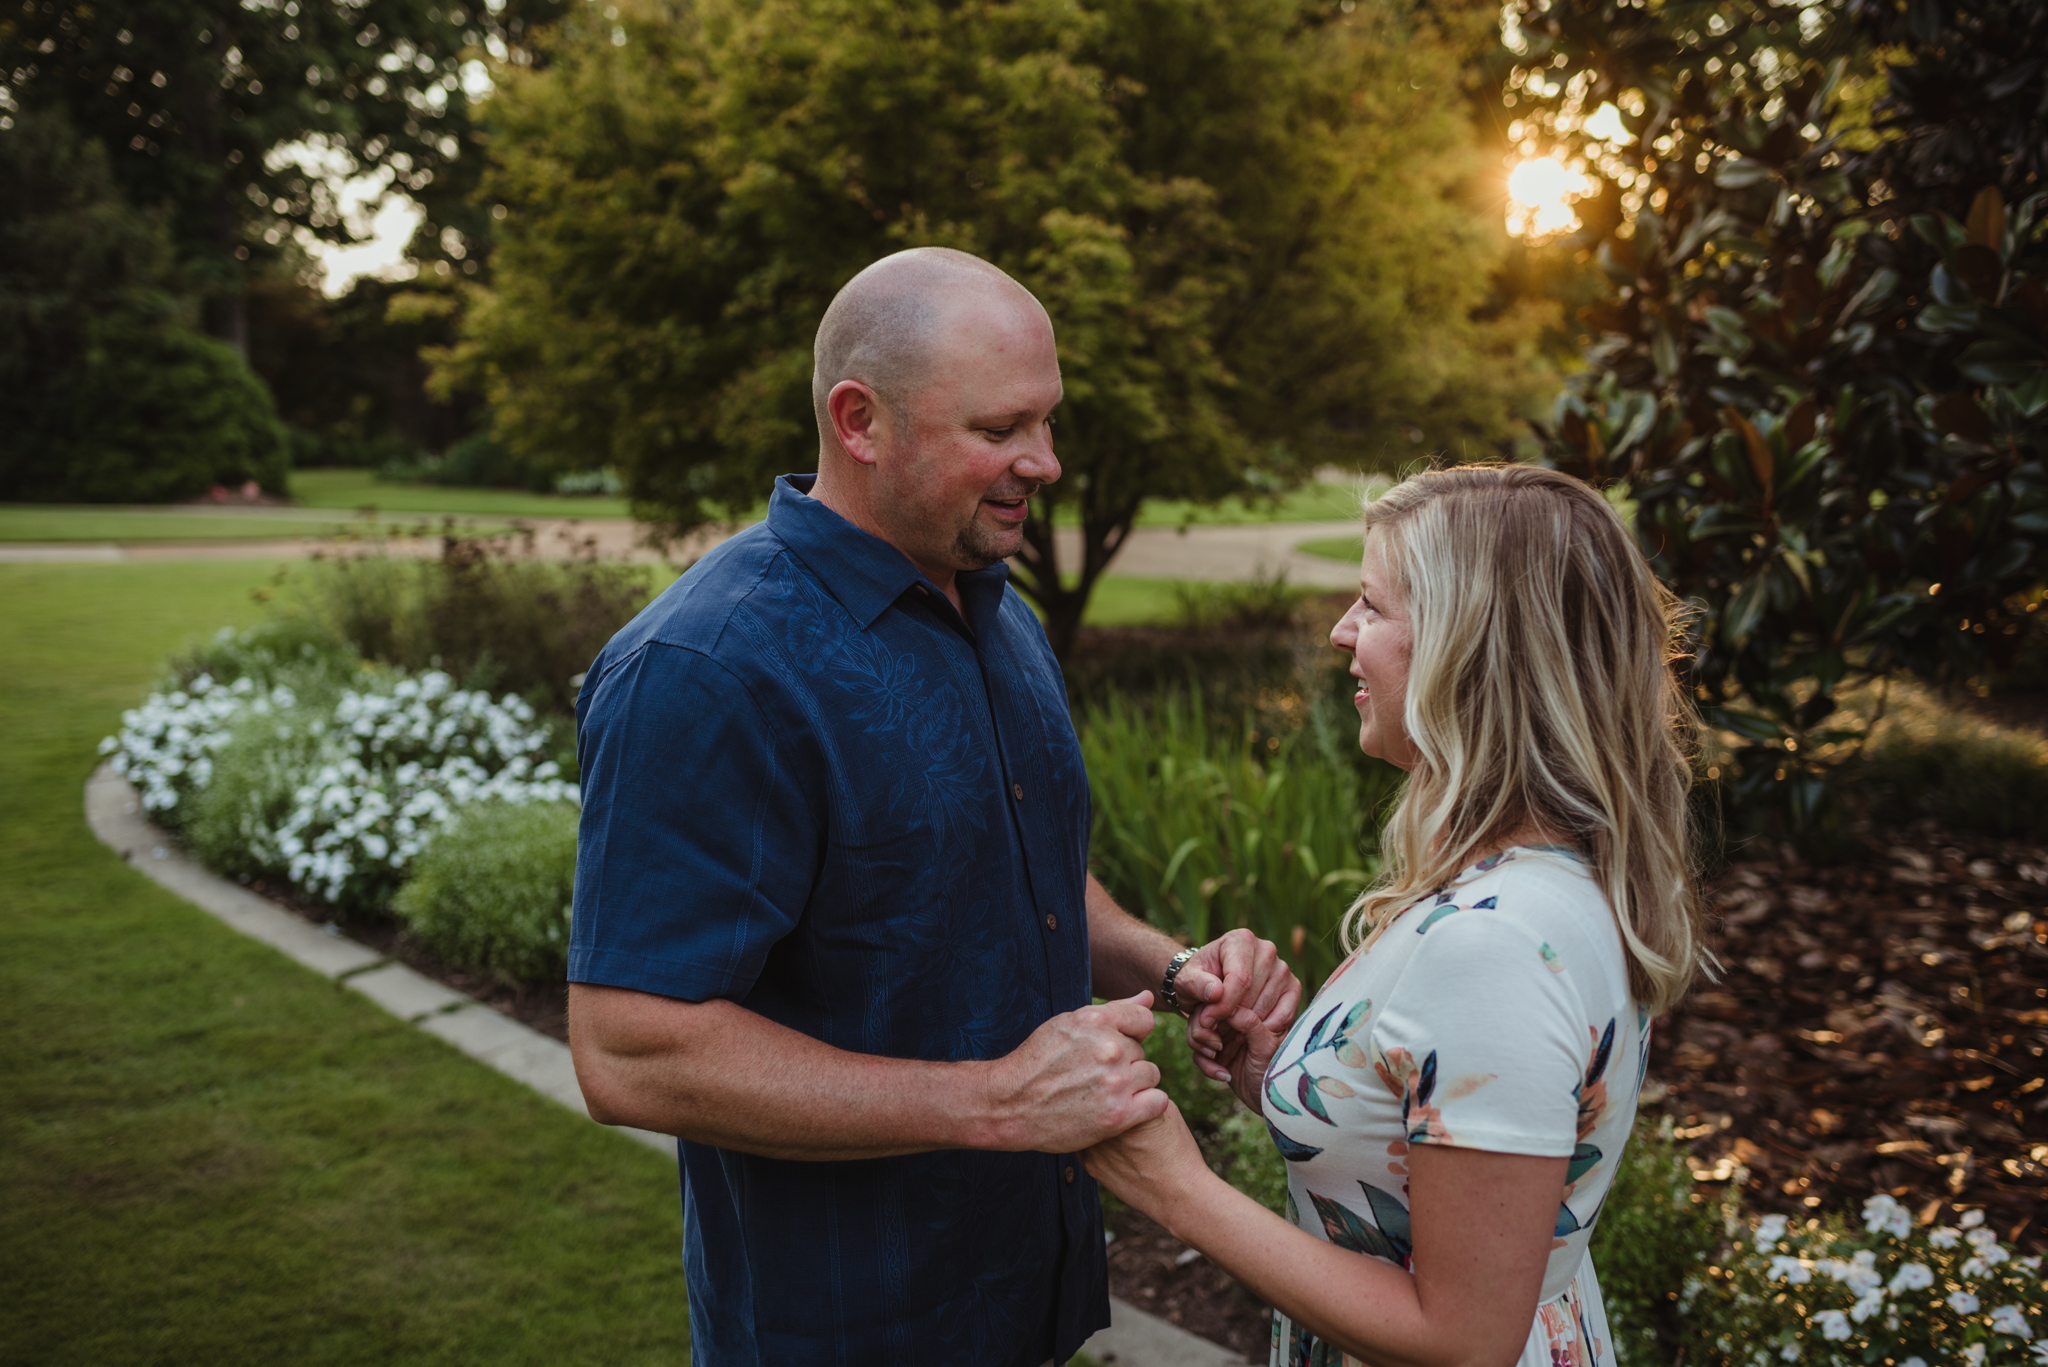 The groom tells me the story of their proposal during their engagement session at Fred Fletcher Park in Raleigh, North Carolina with Rose Trail Images.